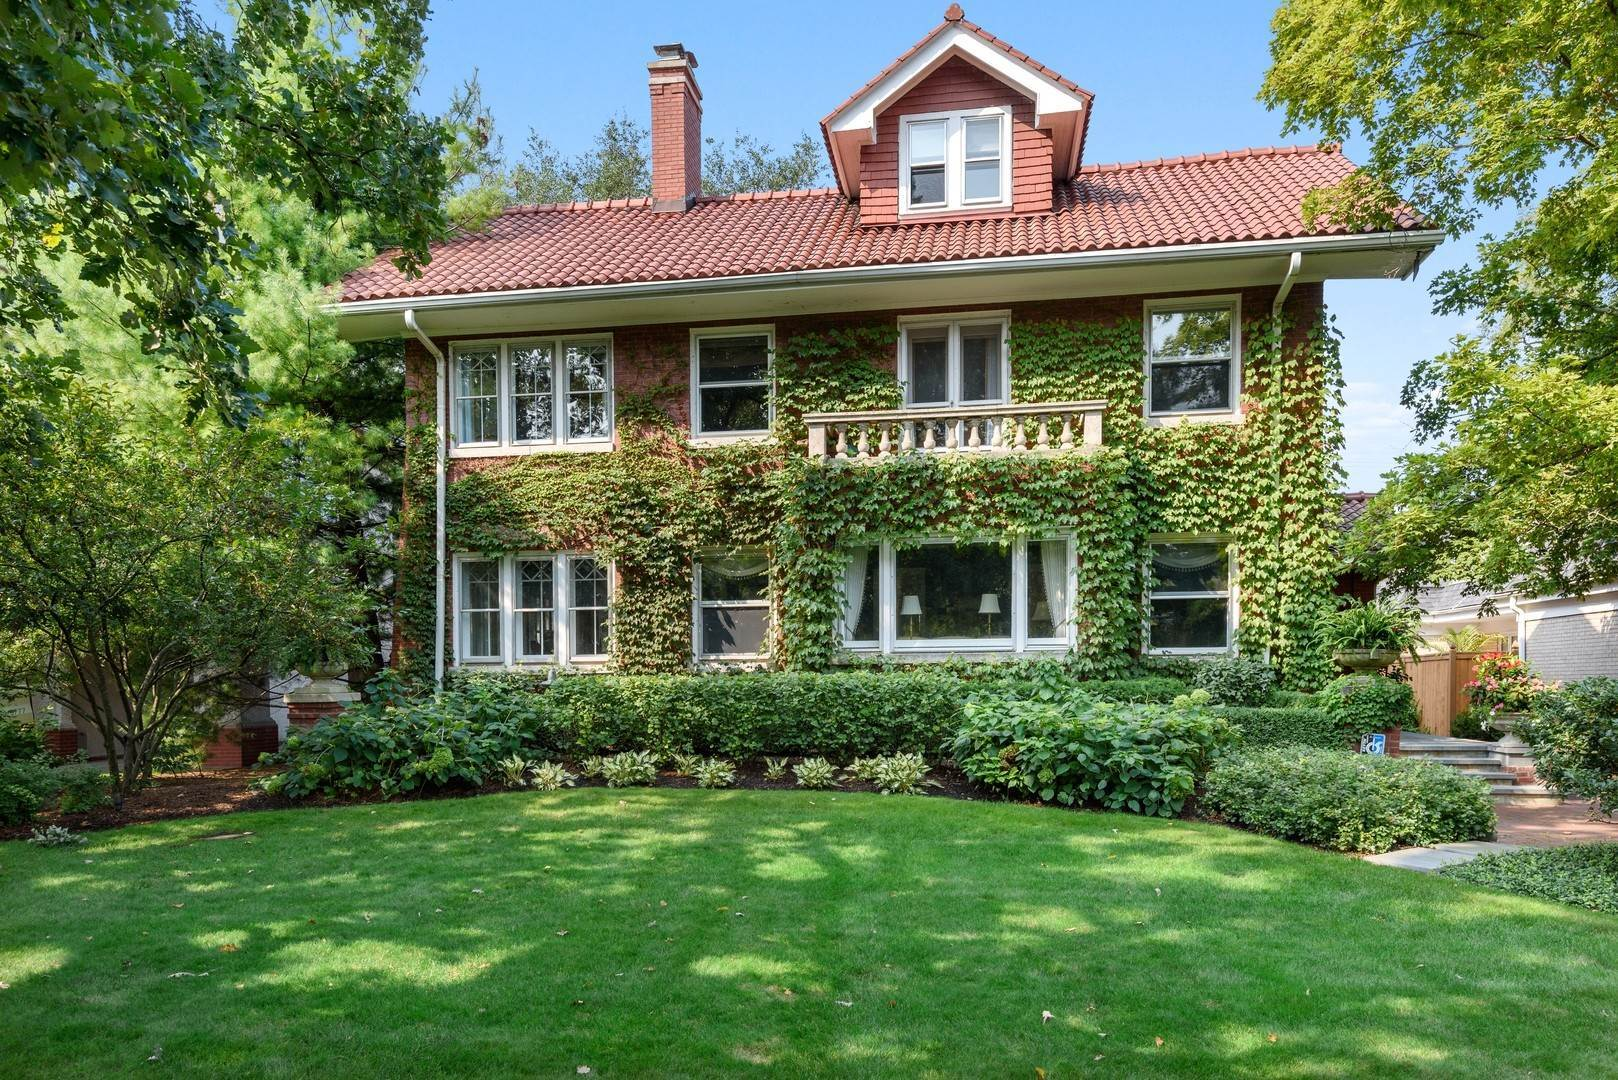 Single Family Homes for Sale at 938 Edgemere Court Evanston, Illinois 60202 United States